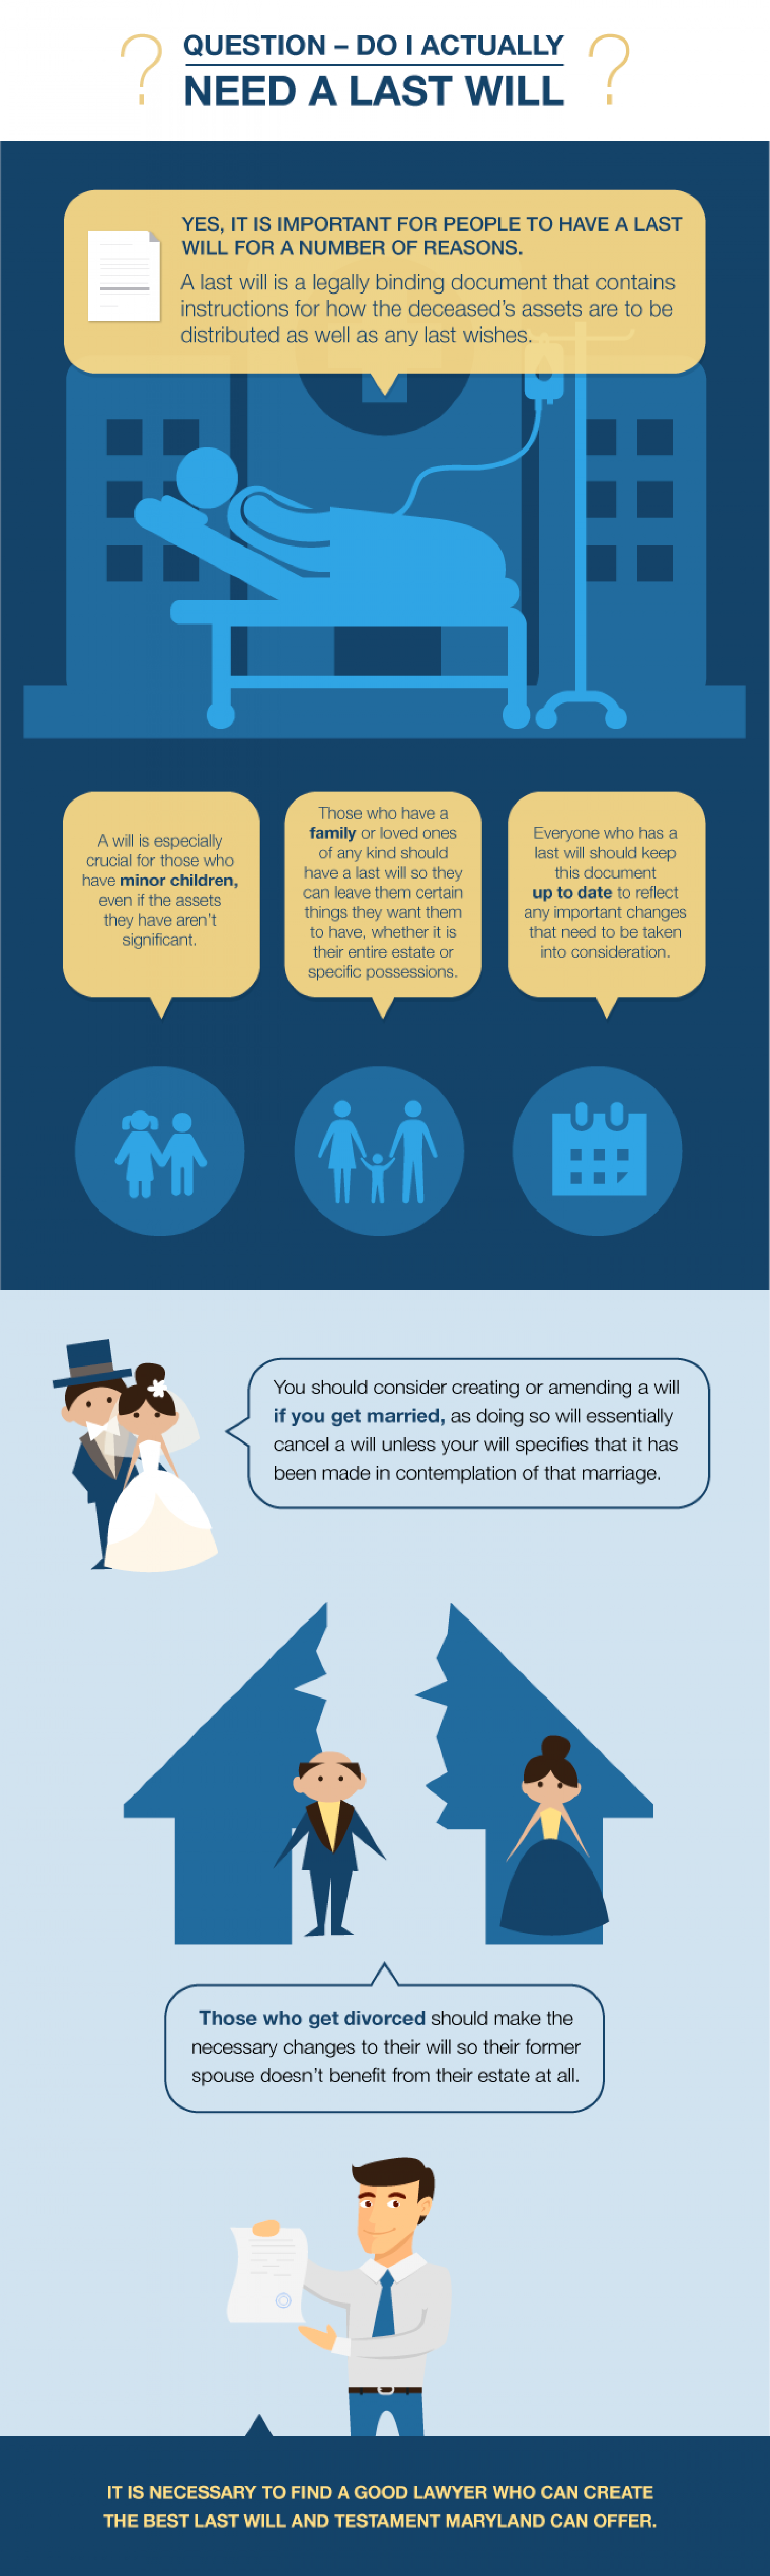 Do I Need a Last Will? Infographic